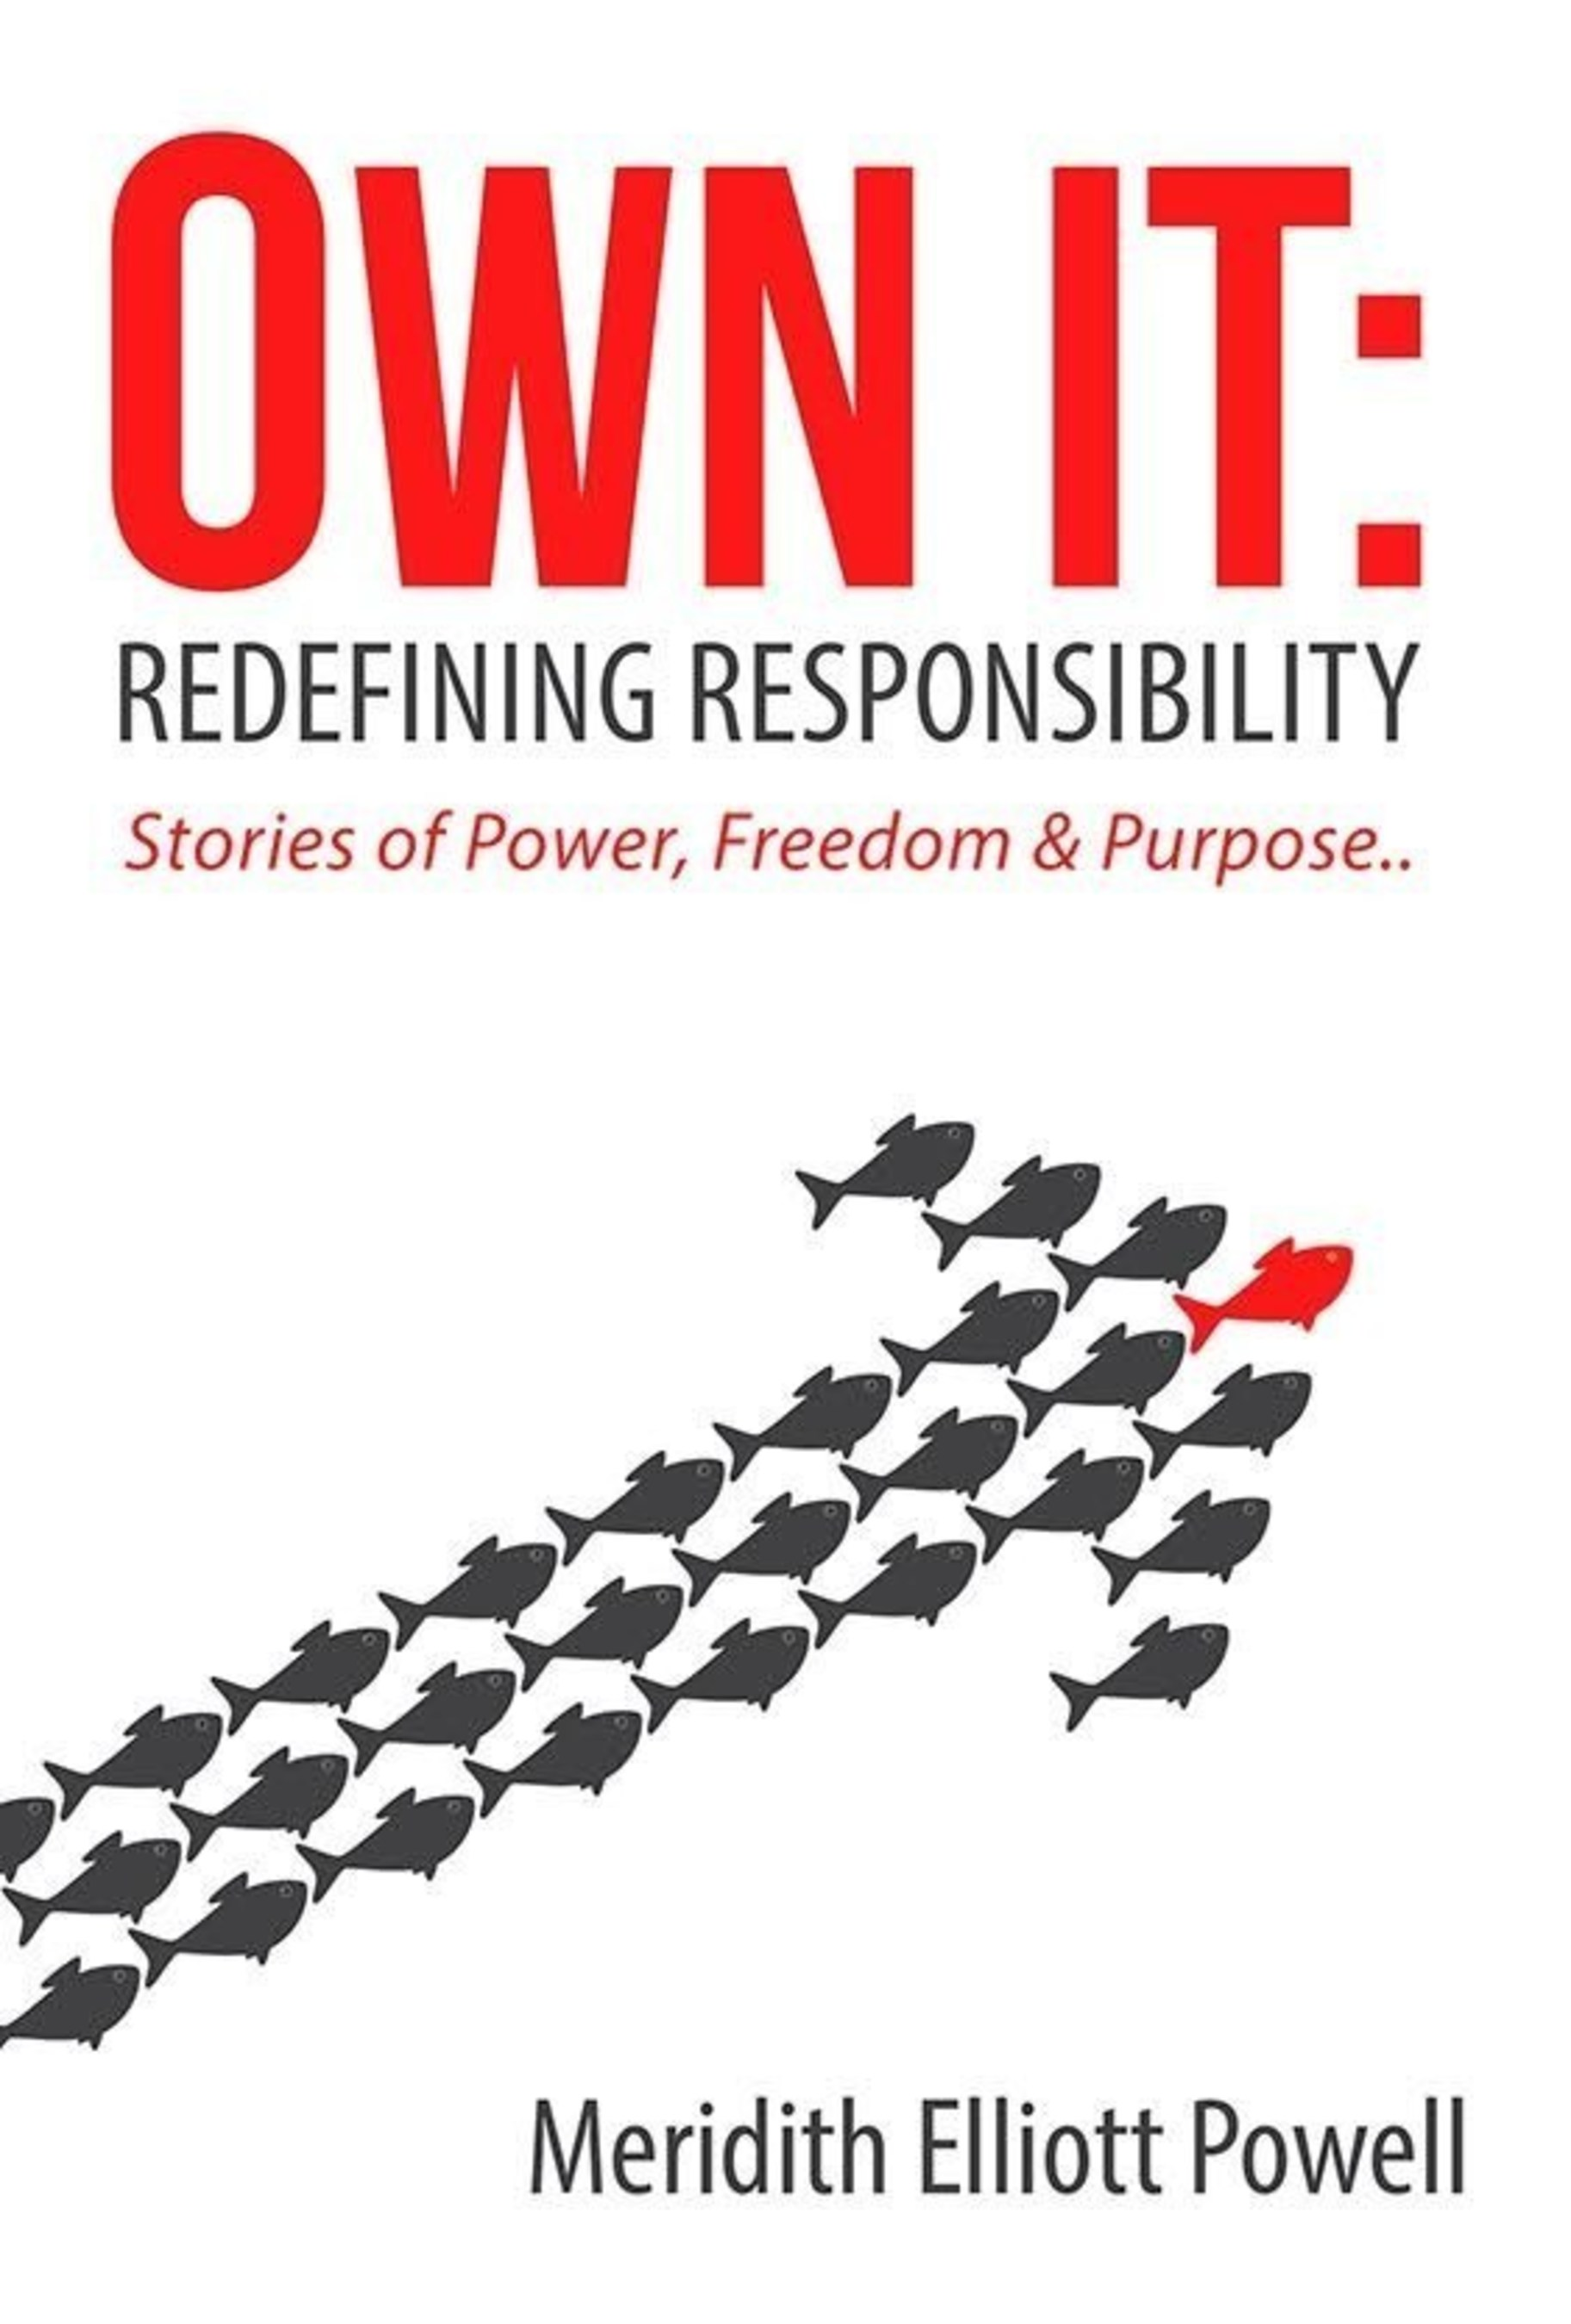 Powell's book dissecting employee engagement and responsibility quotes Studio Four Design, a Knoxville-based architecture firm, as example of a favorable and successful work environment.